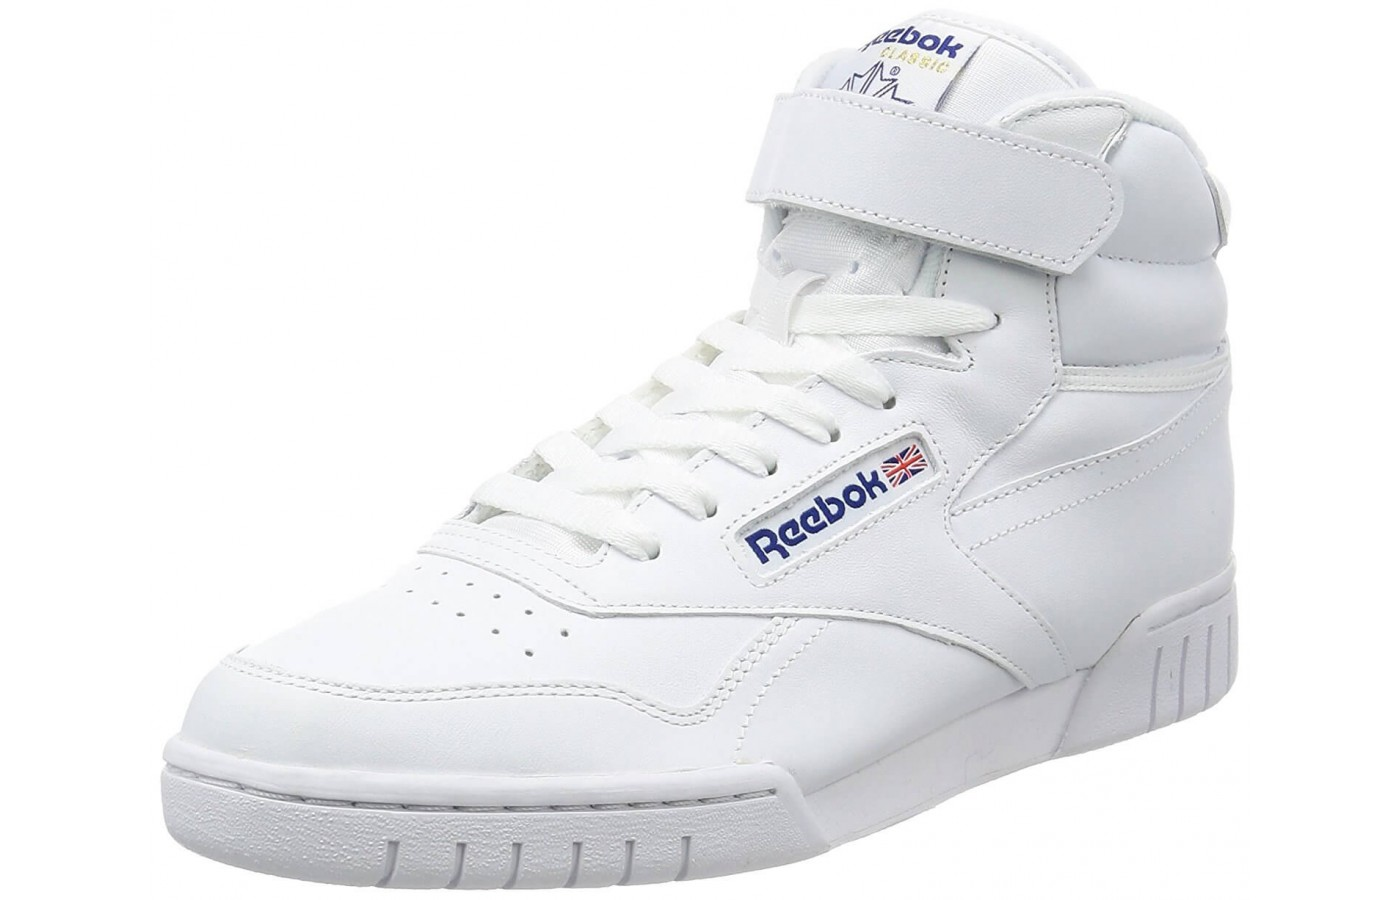 The Reebok Ex-O-Fit Hi features a supportive high-cut design